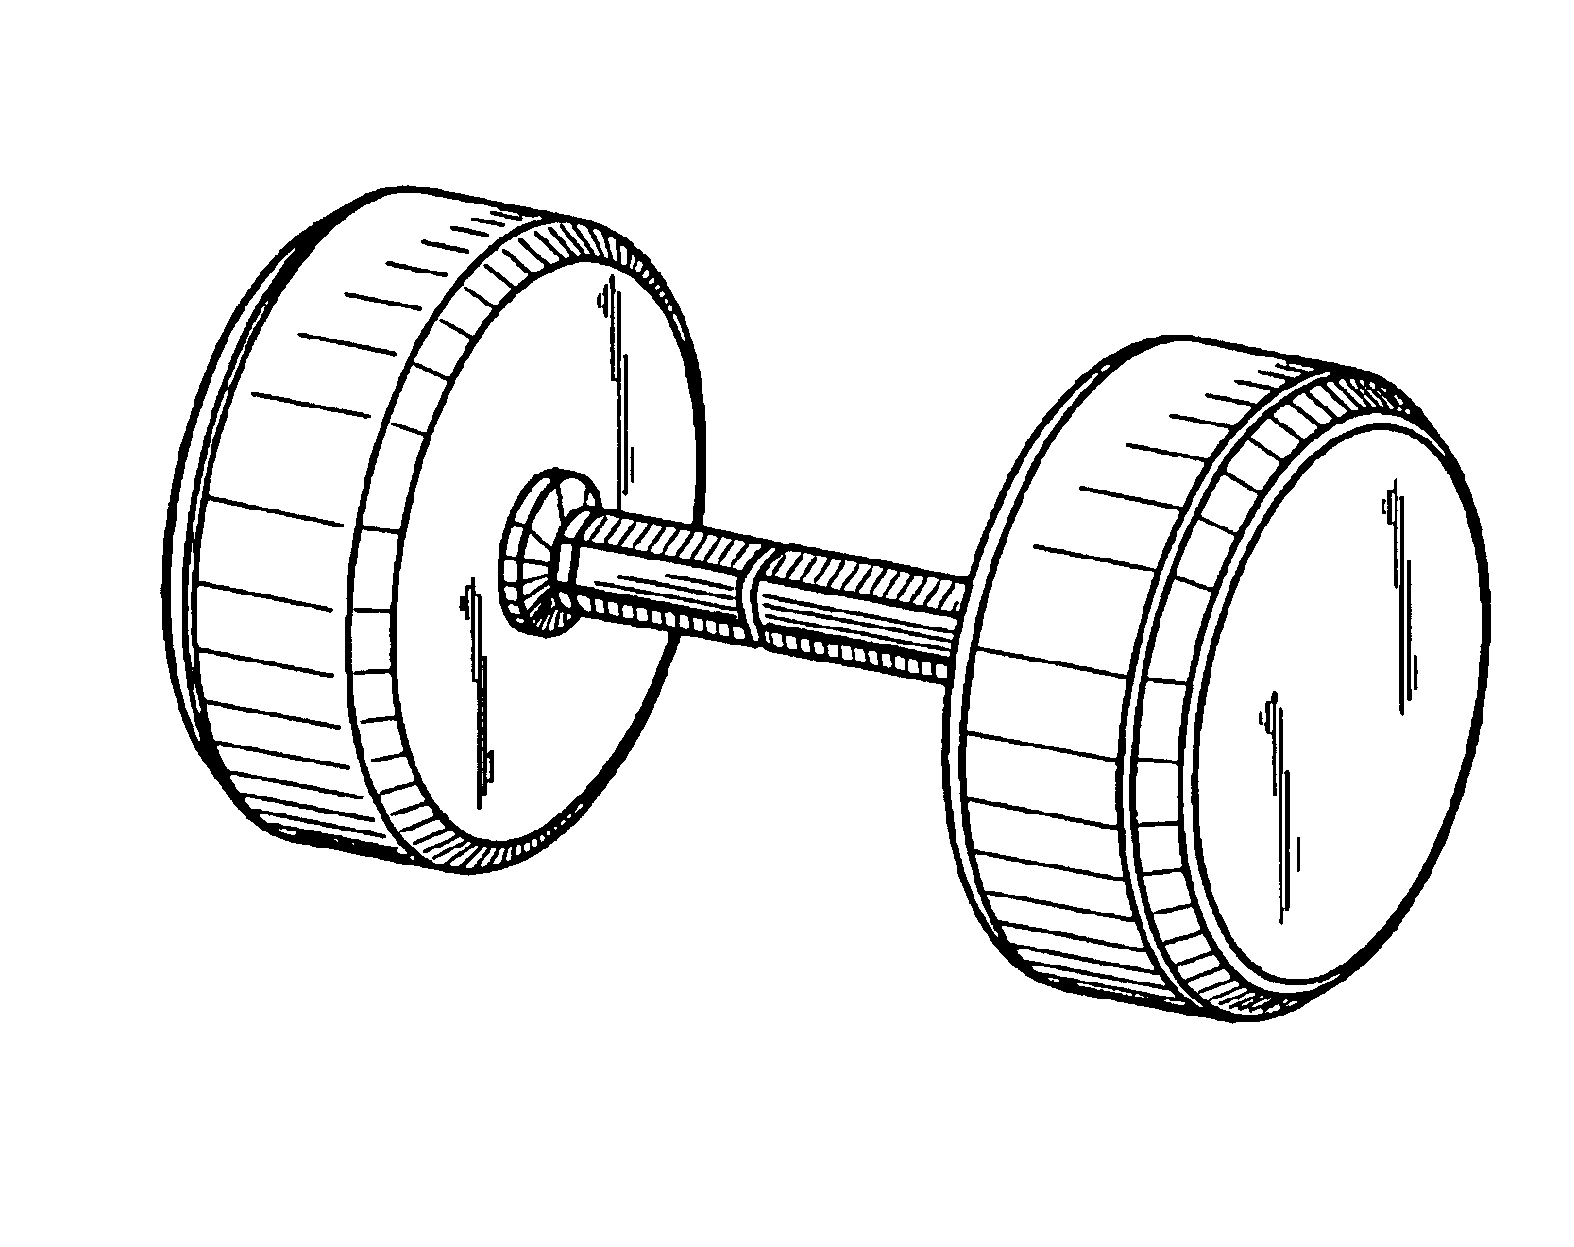 Dumbbells Drawing | www.pixshark.com - Images Galleries ...